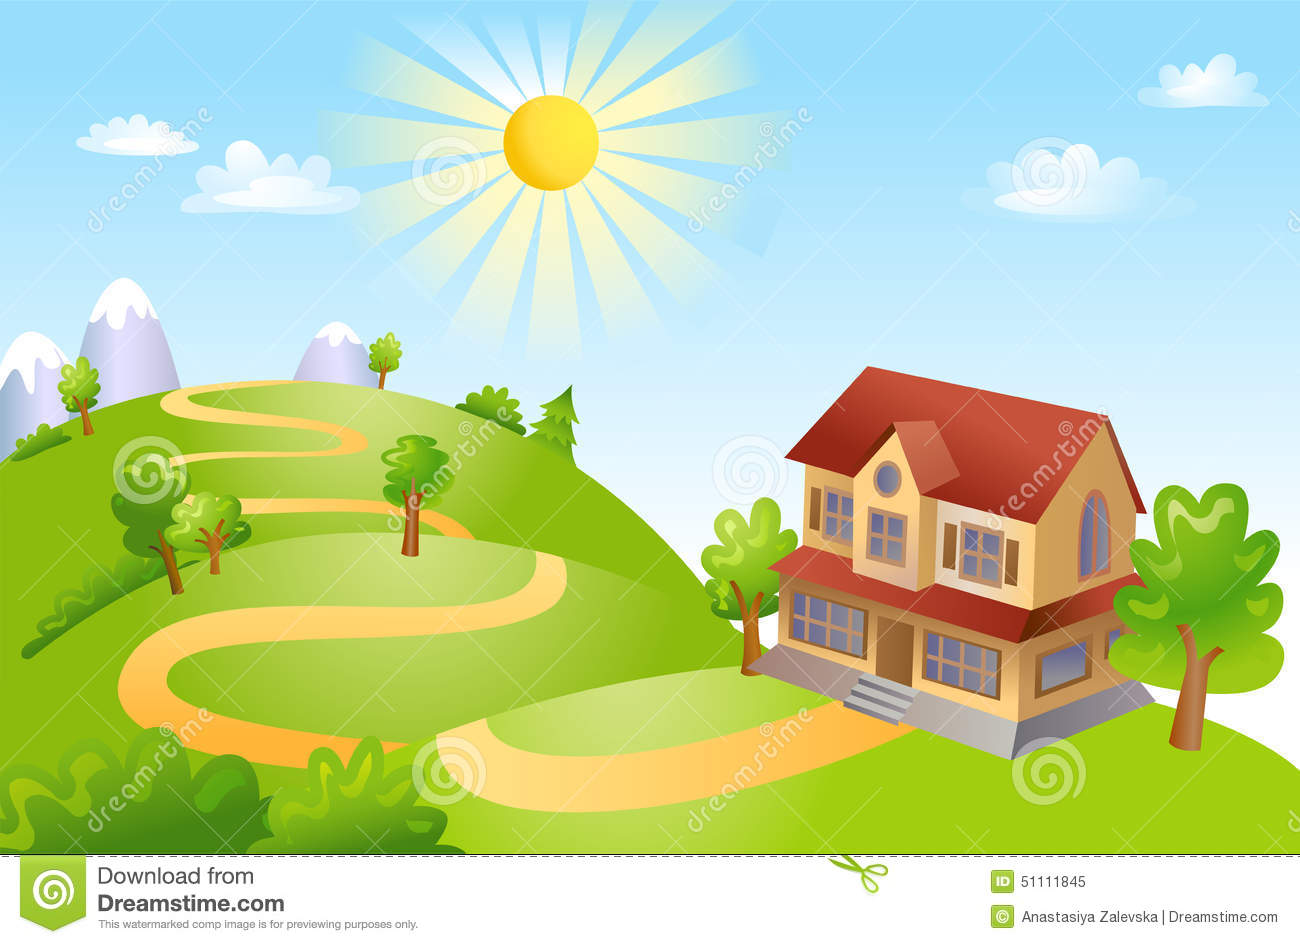 vector illustration beautiful landscape rural scene green field house trees sunny day 51111845